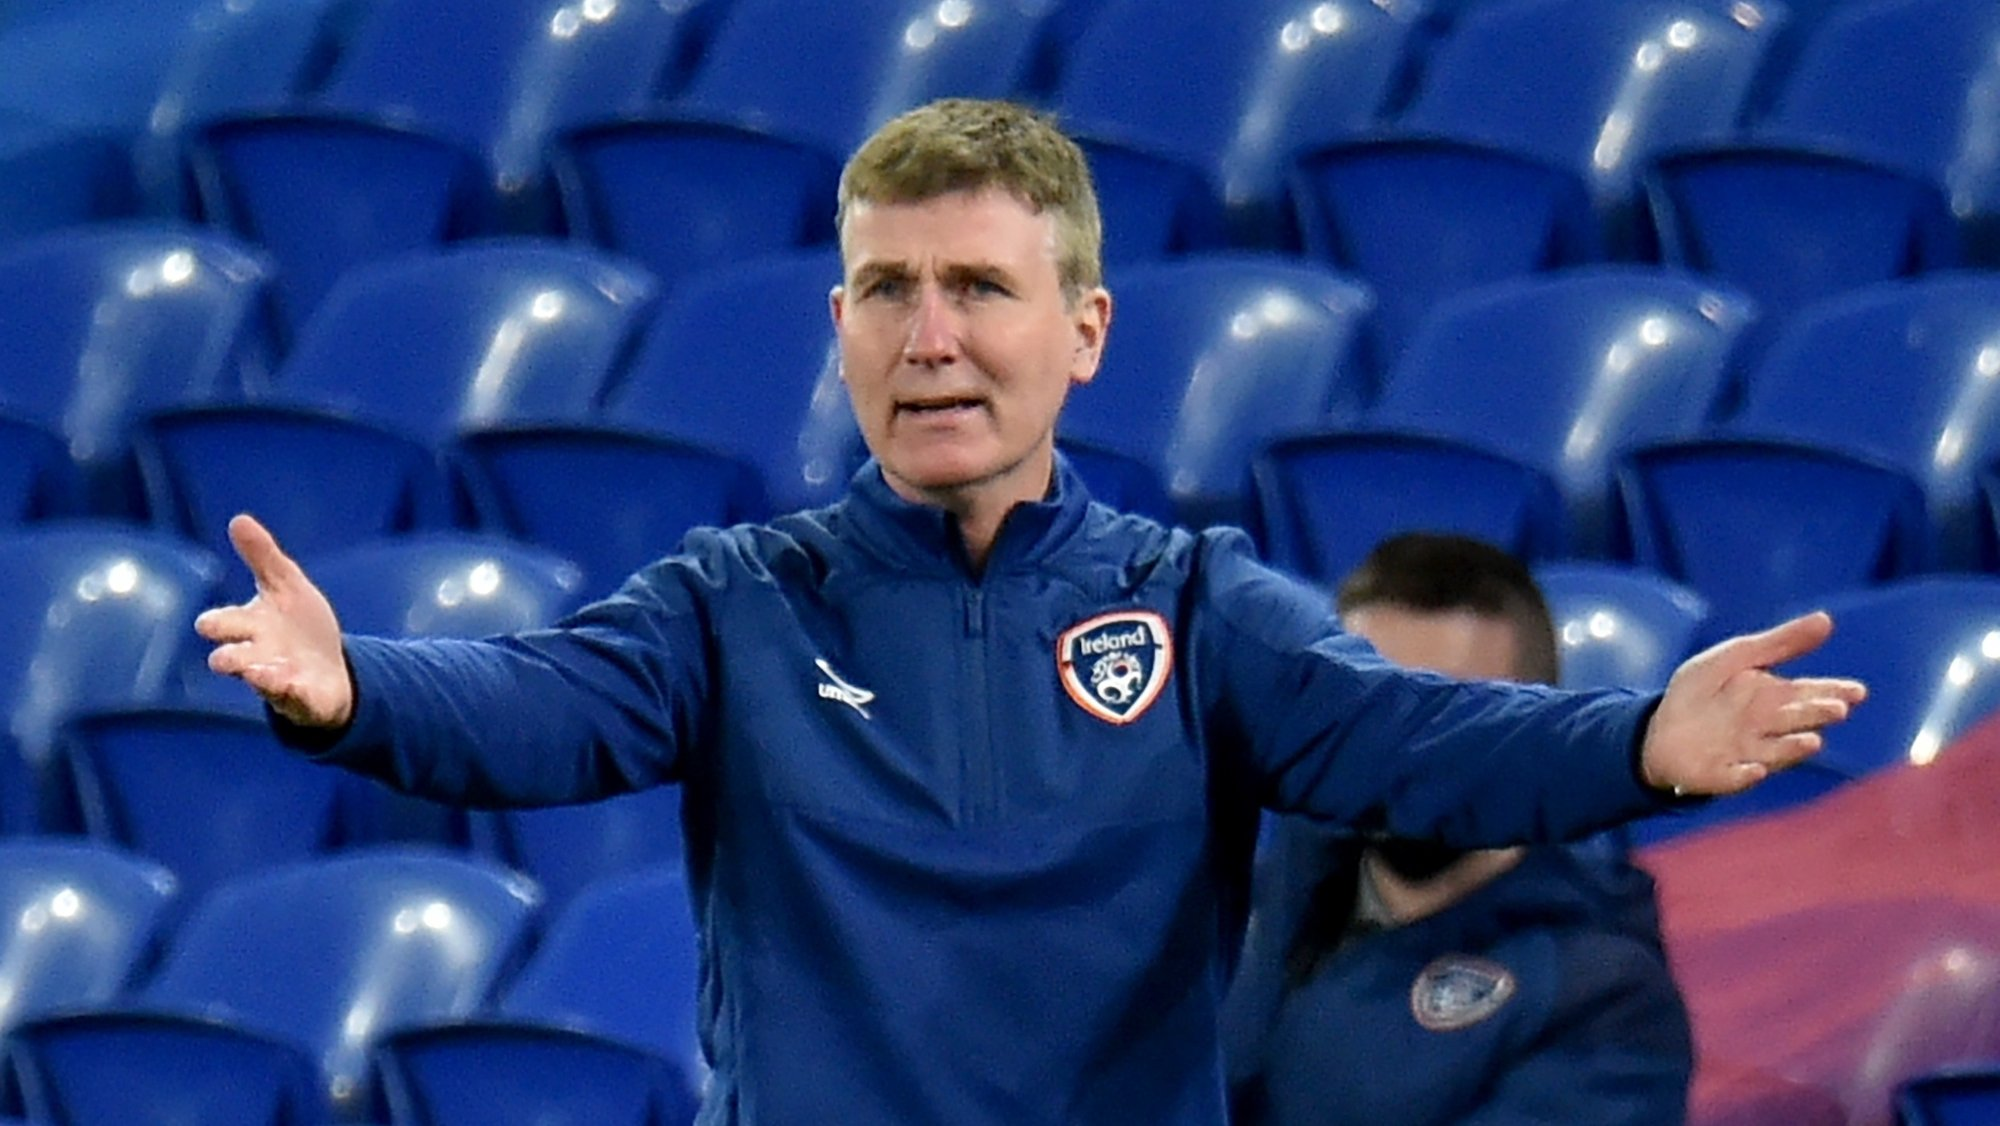 epa08822705 Ireland's manager Stephen Kenny during the UEFA Nations League soccer match between Wales and Ireland at the Cardiff City stadium in Cardiff, Britain, 15 November 2020.  EPA/PETER POWELL